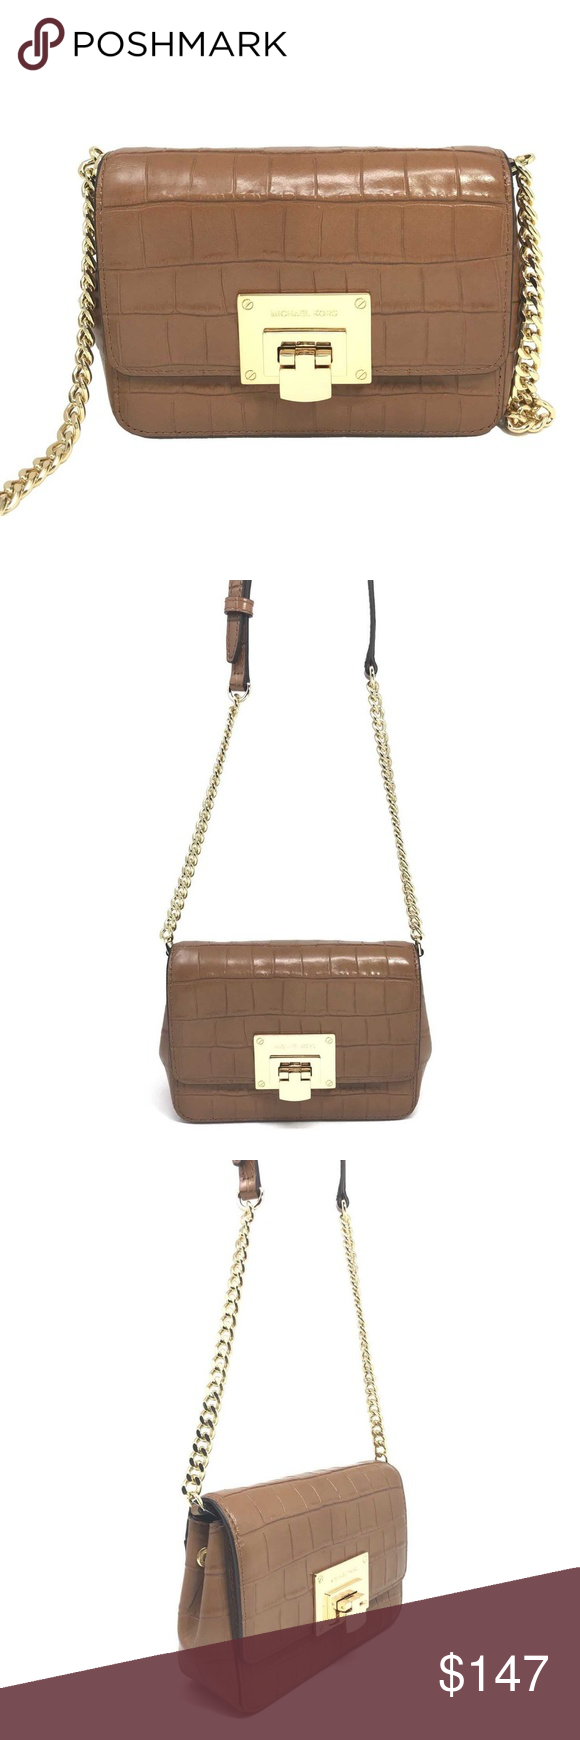 5e7f9a6e5a0ae1 Michael Kors Tina Small Clutch Walnut Crossbody Michael Kors Tina Small  Clutch Walnut Embossed Leather Crossbody